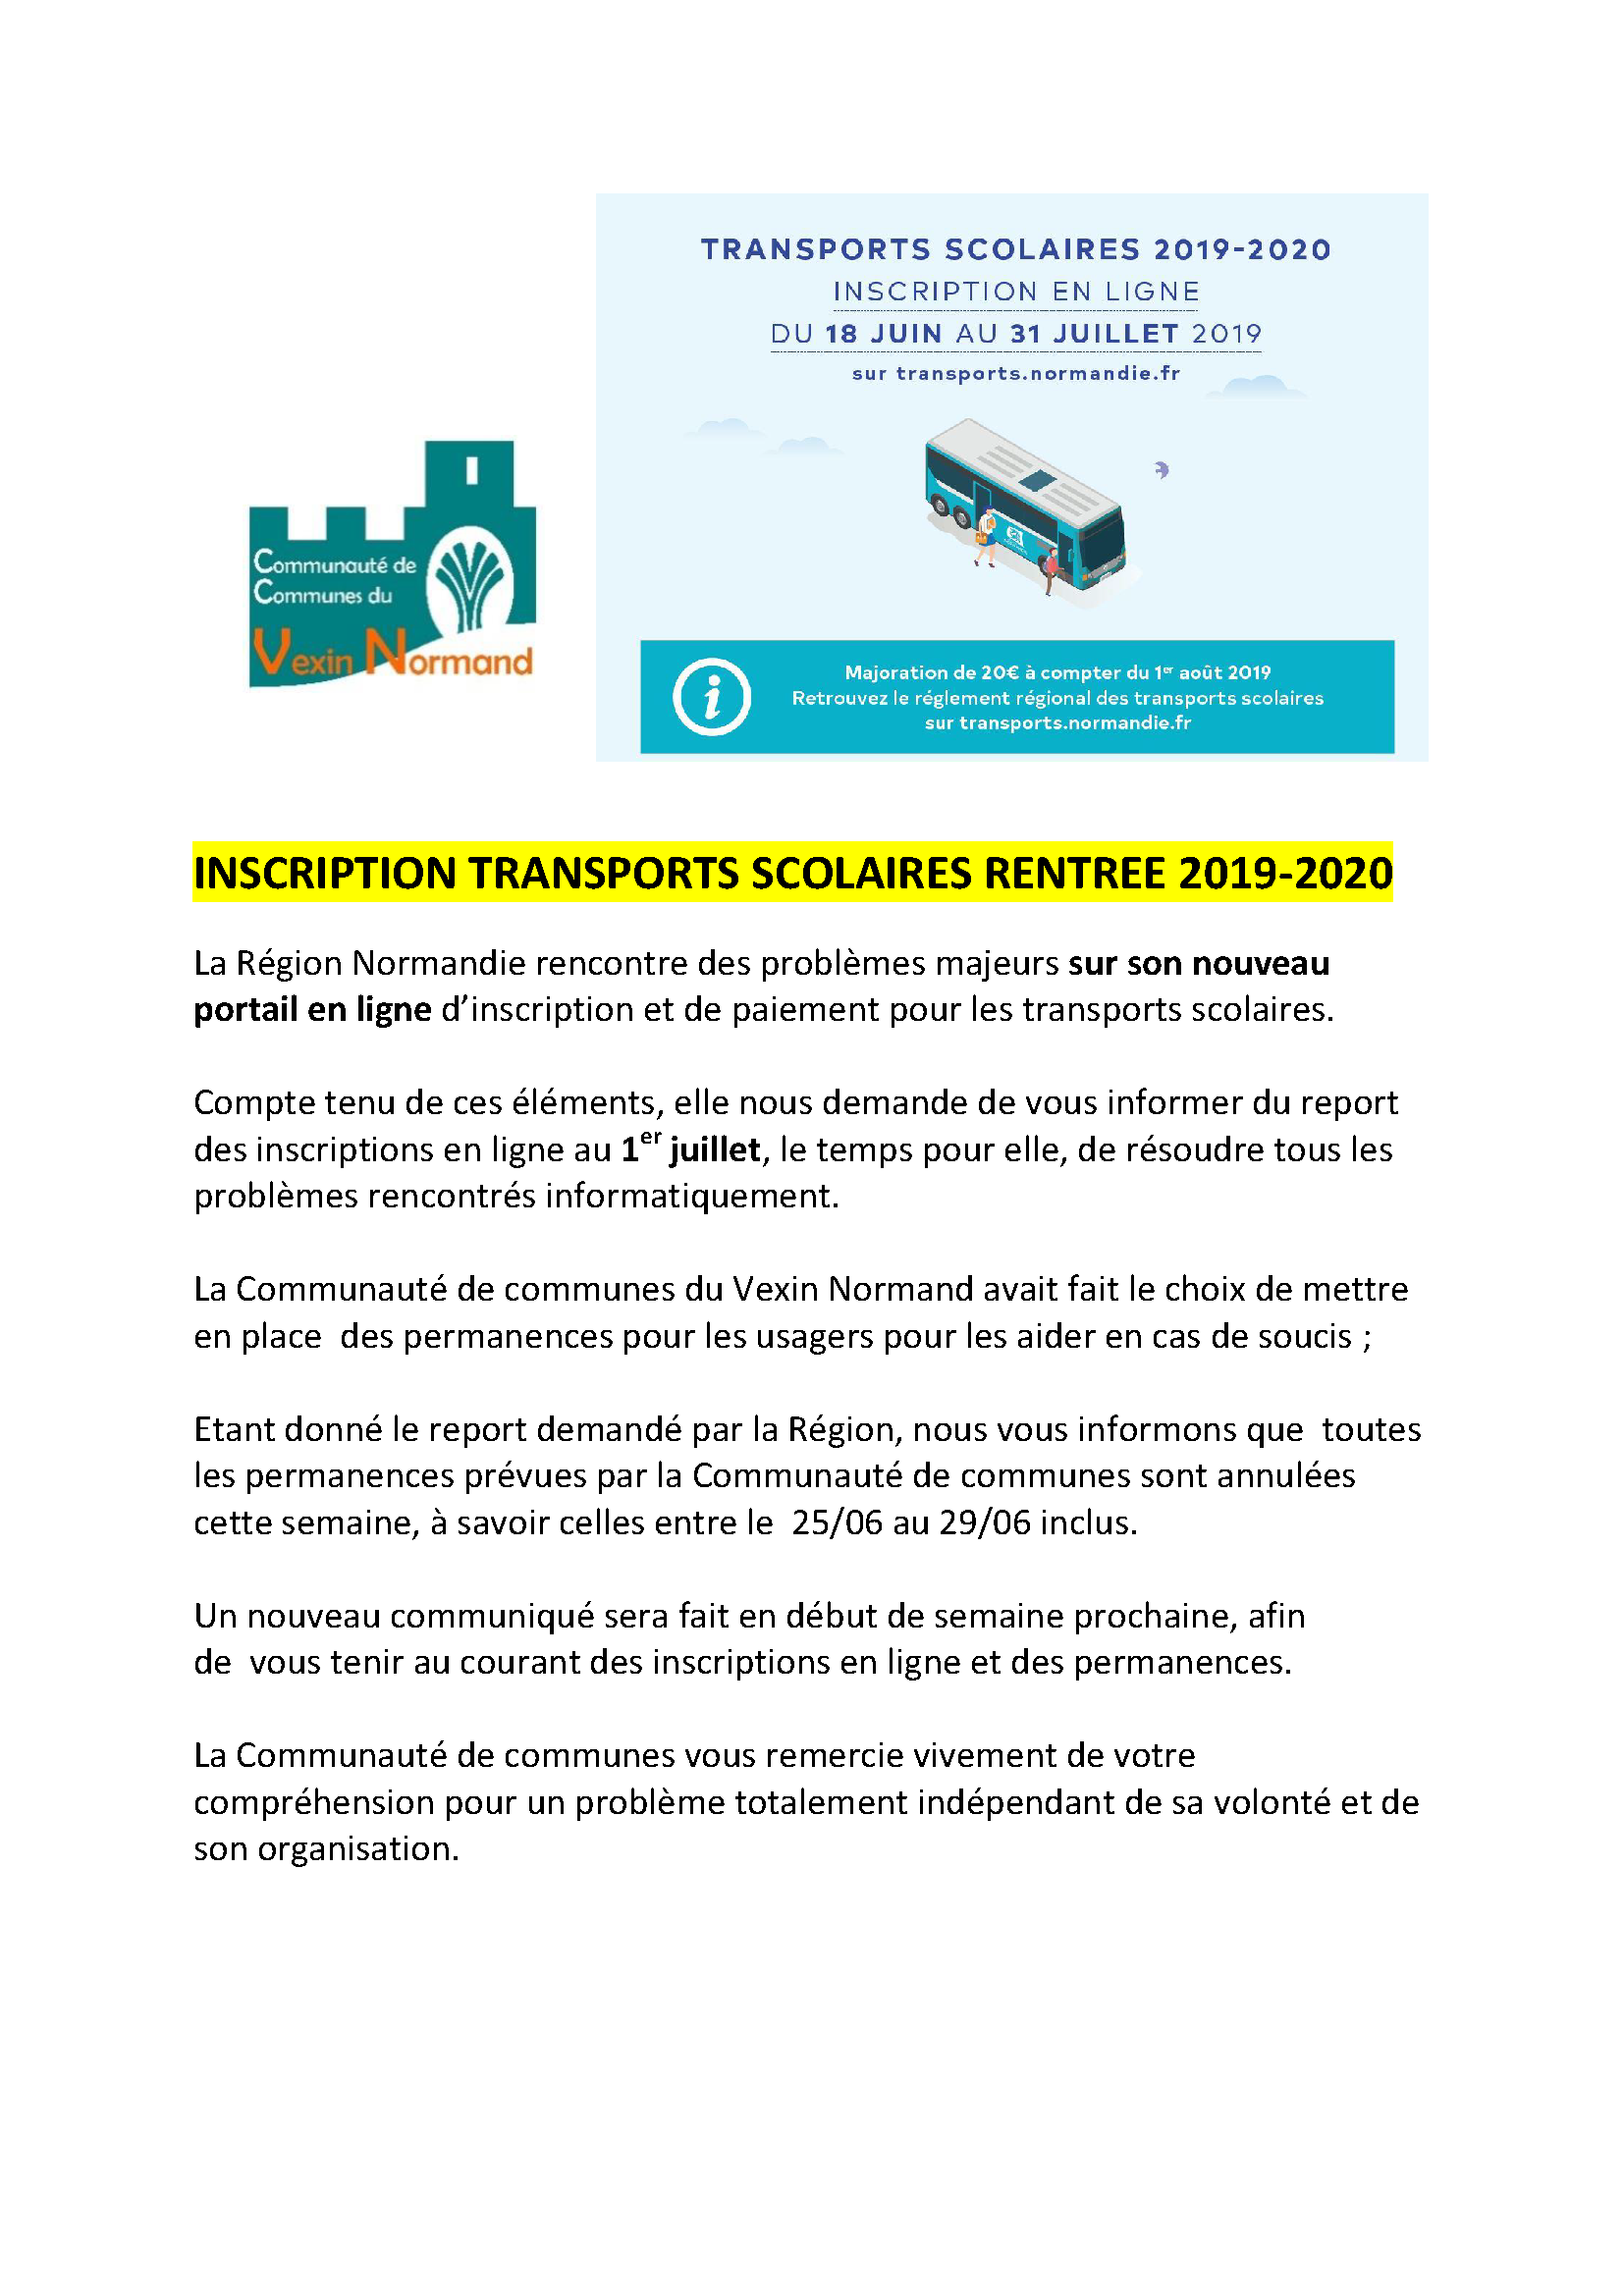 INSCRIPTION TRANSPORTS SCOLAIRES RENTREE 2019